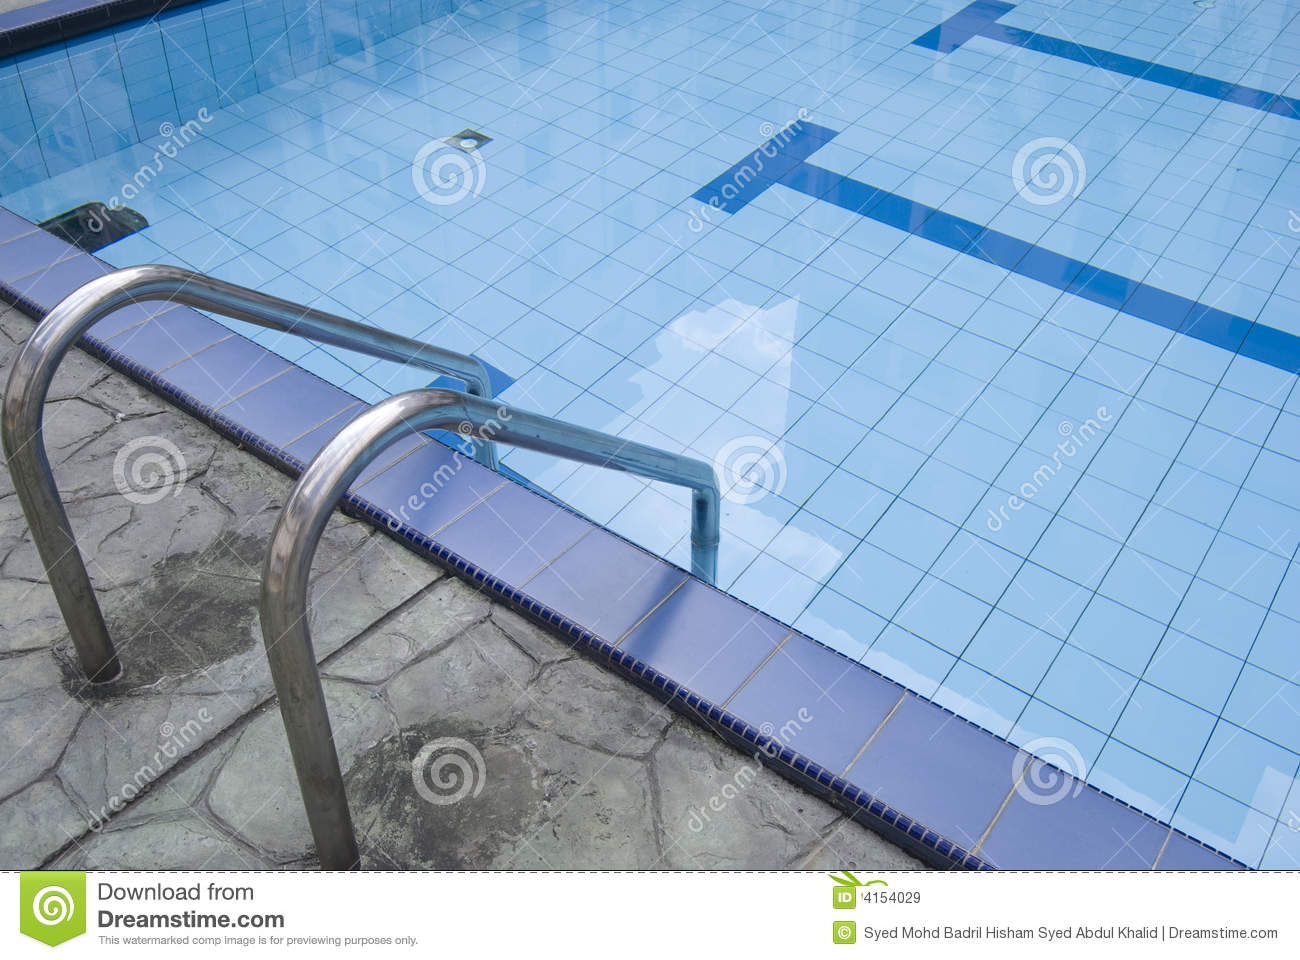 Royalty free stock images empty swimming pool image 4154029 for Empty swimming pool